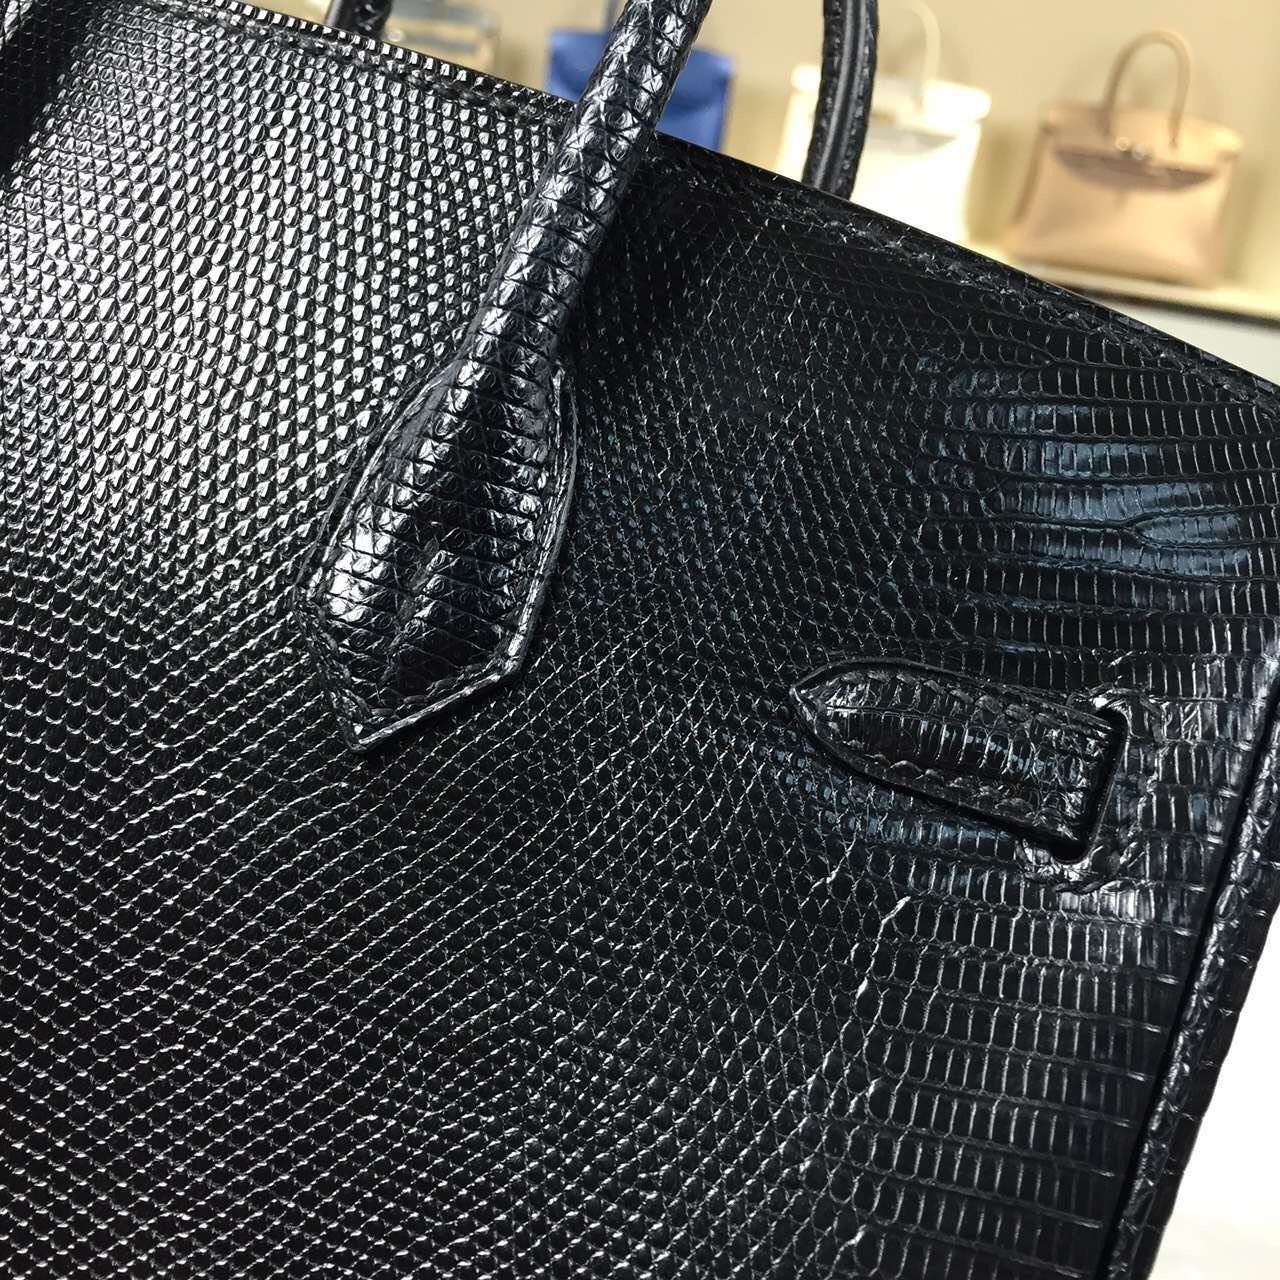 Discount Hermes CK89 Black Lizard Skin Leather Birkin Bag25cm